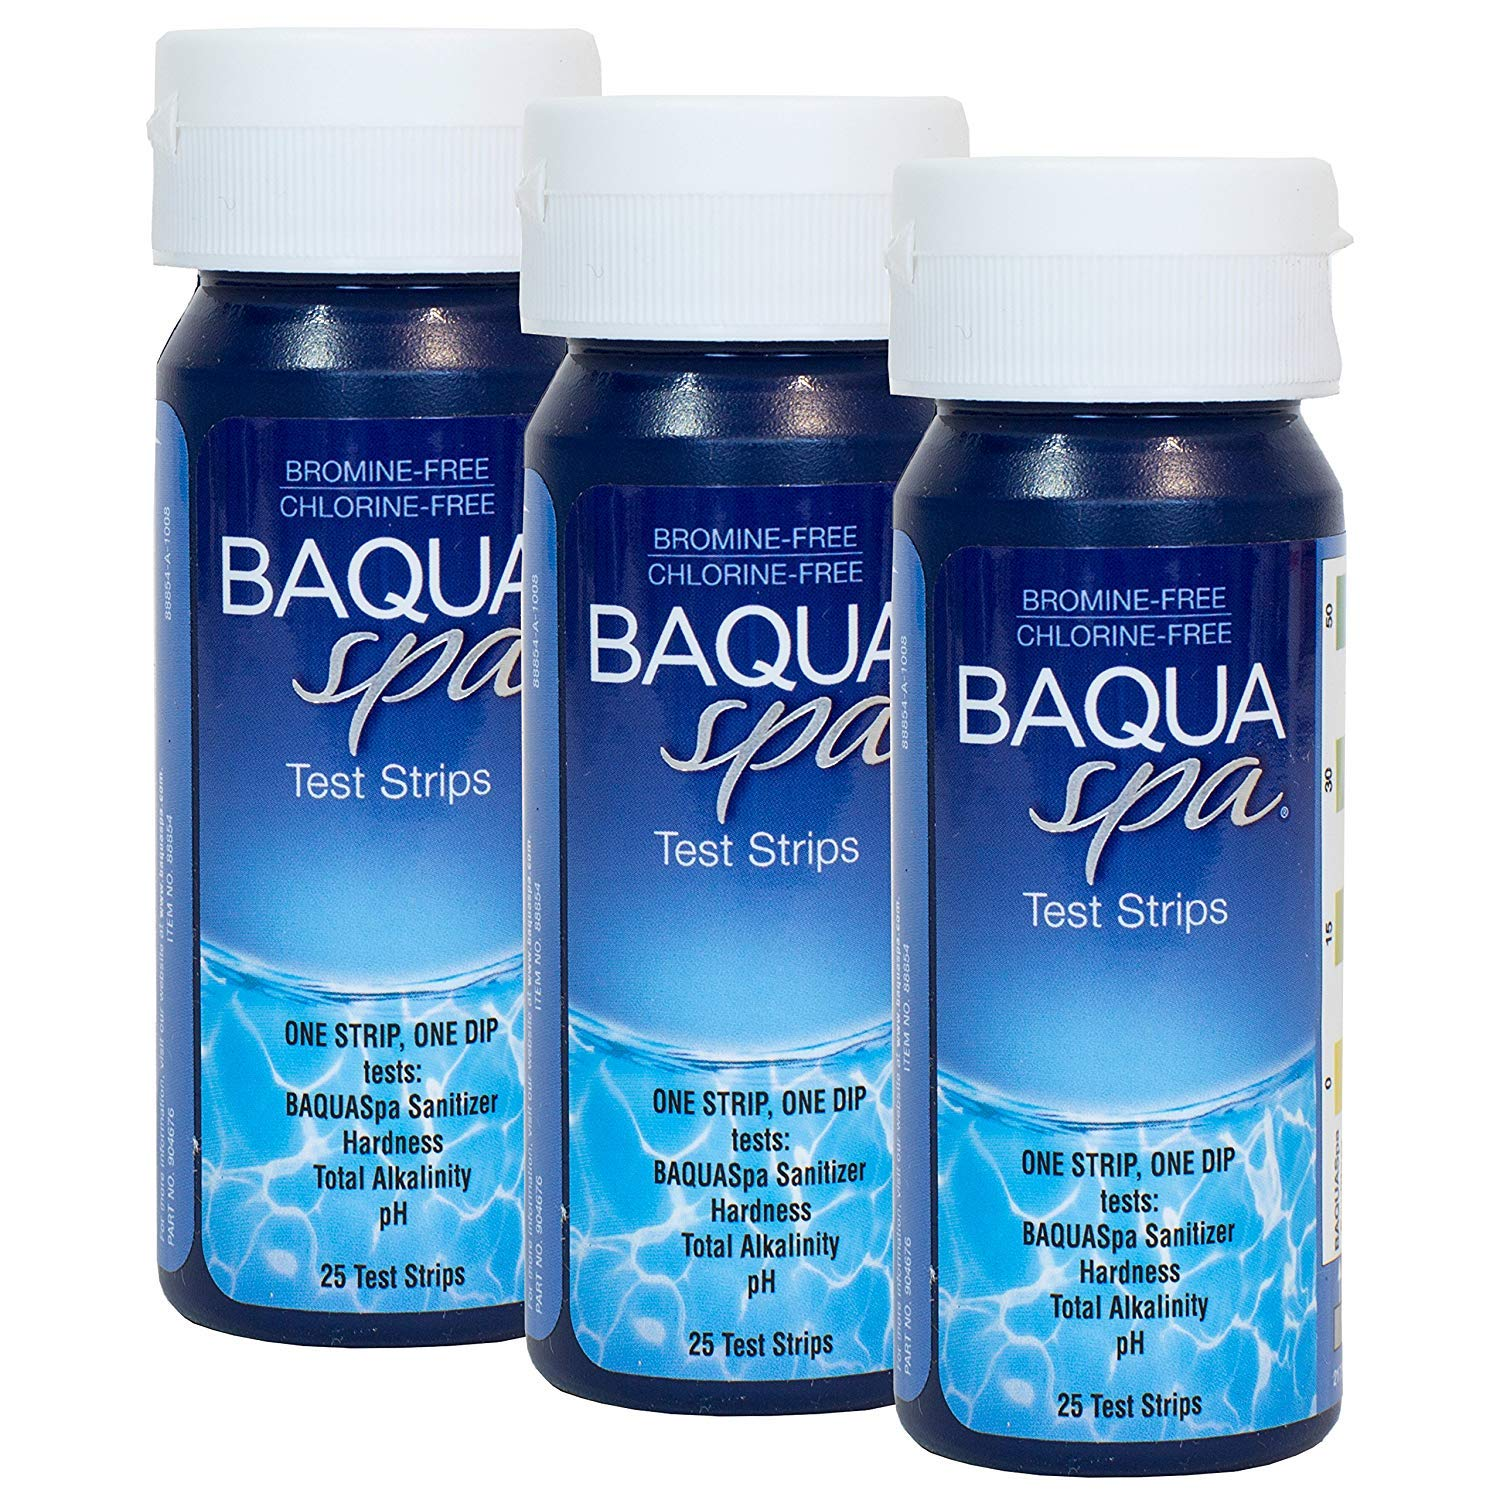 Baqua Spa Test Strips-4 way (25 count) (3 Pack) by Baqua Spa